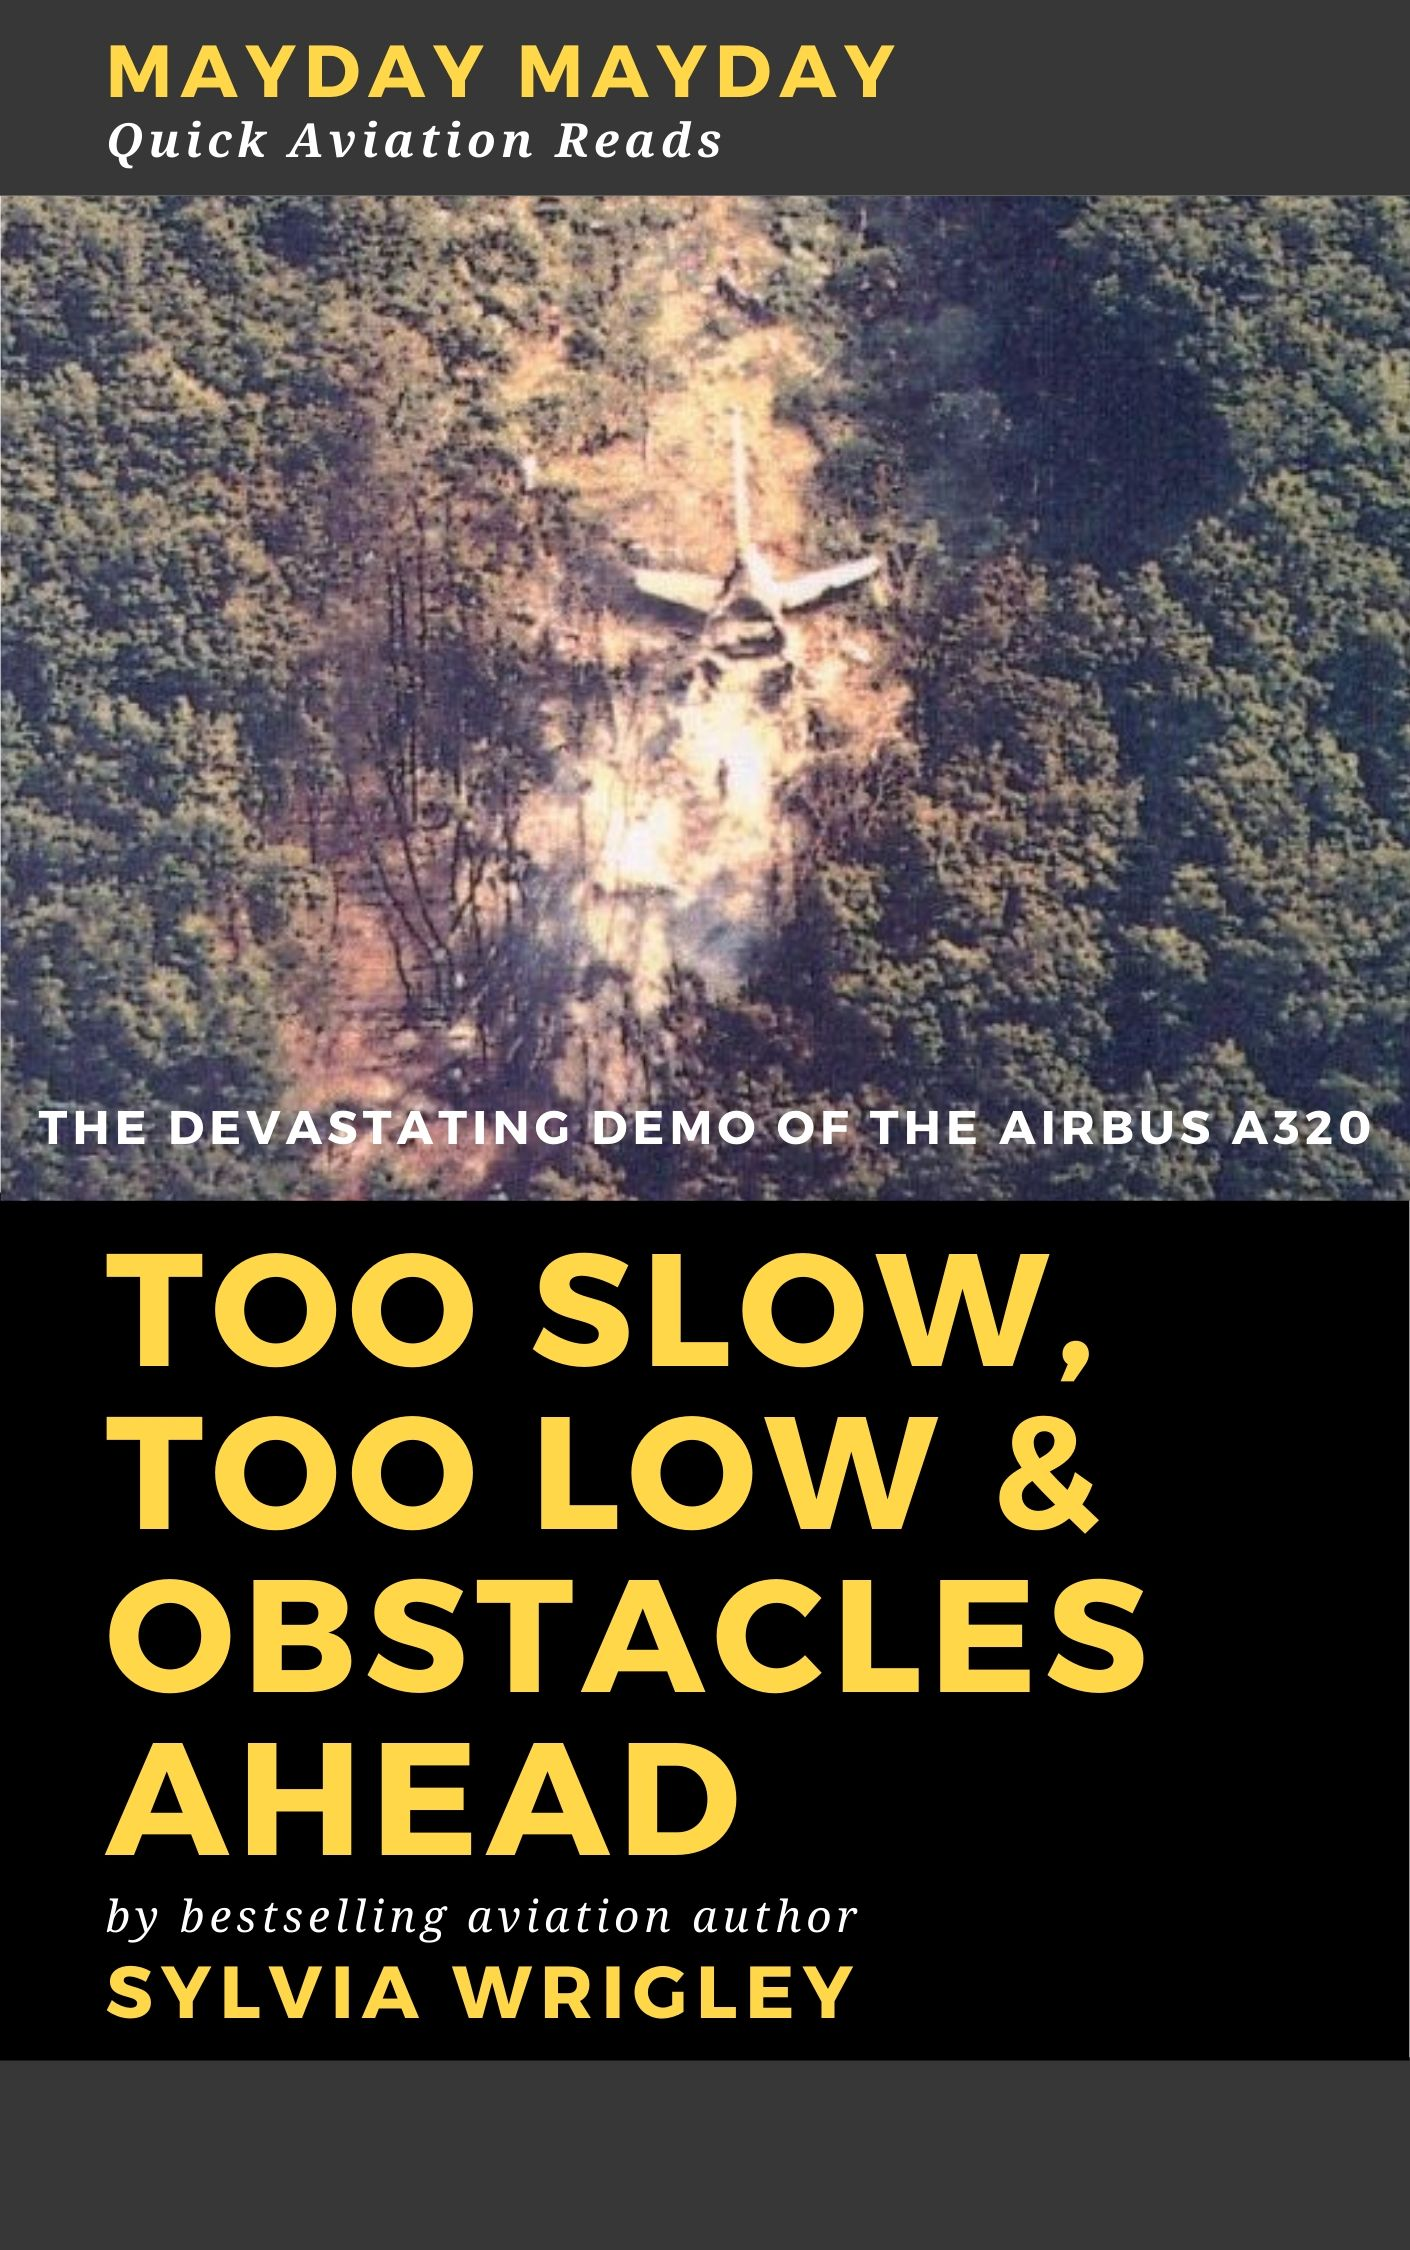 Too Slow, Too Low & Obstacles Ahead: The Devastating Demo of the Airbus 320